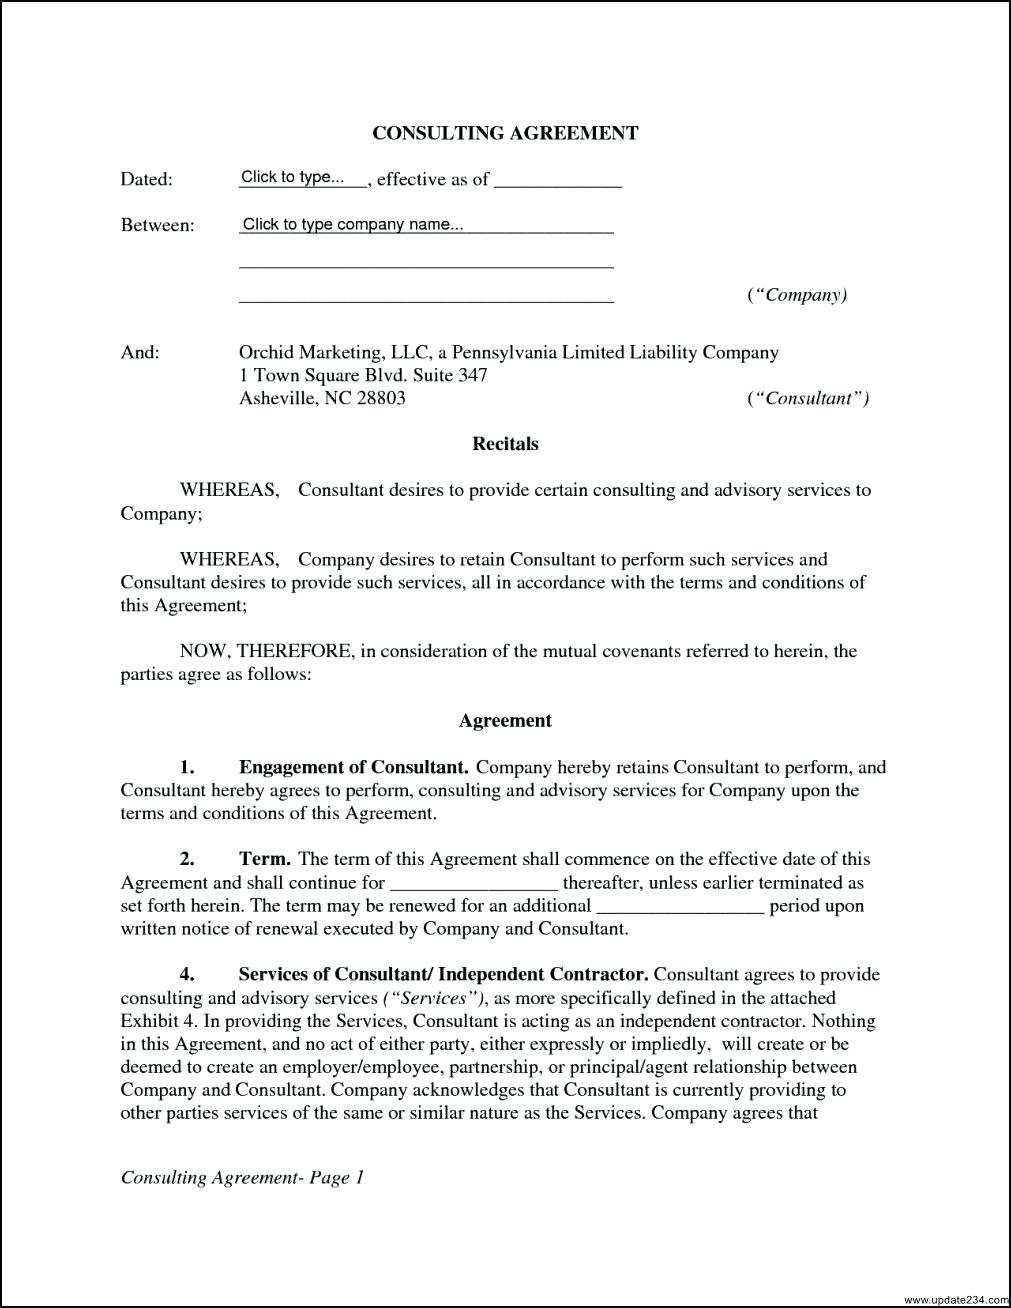 Simple Consulting Agreement Sample 114661 Template Consultant Contract Template